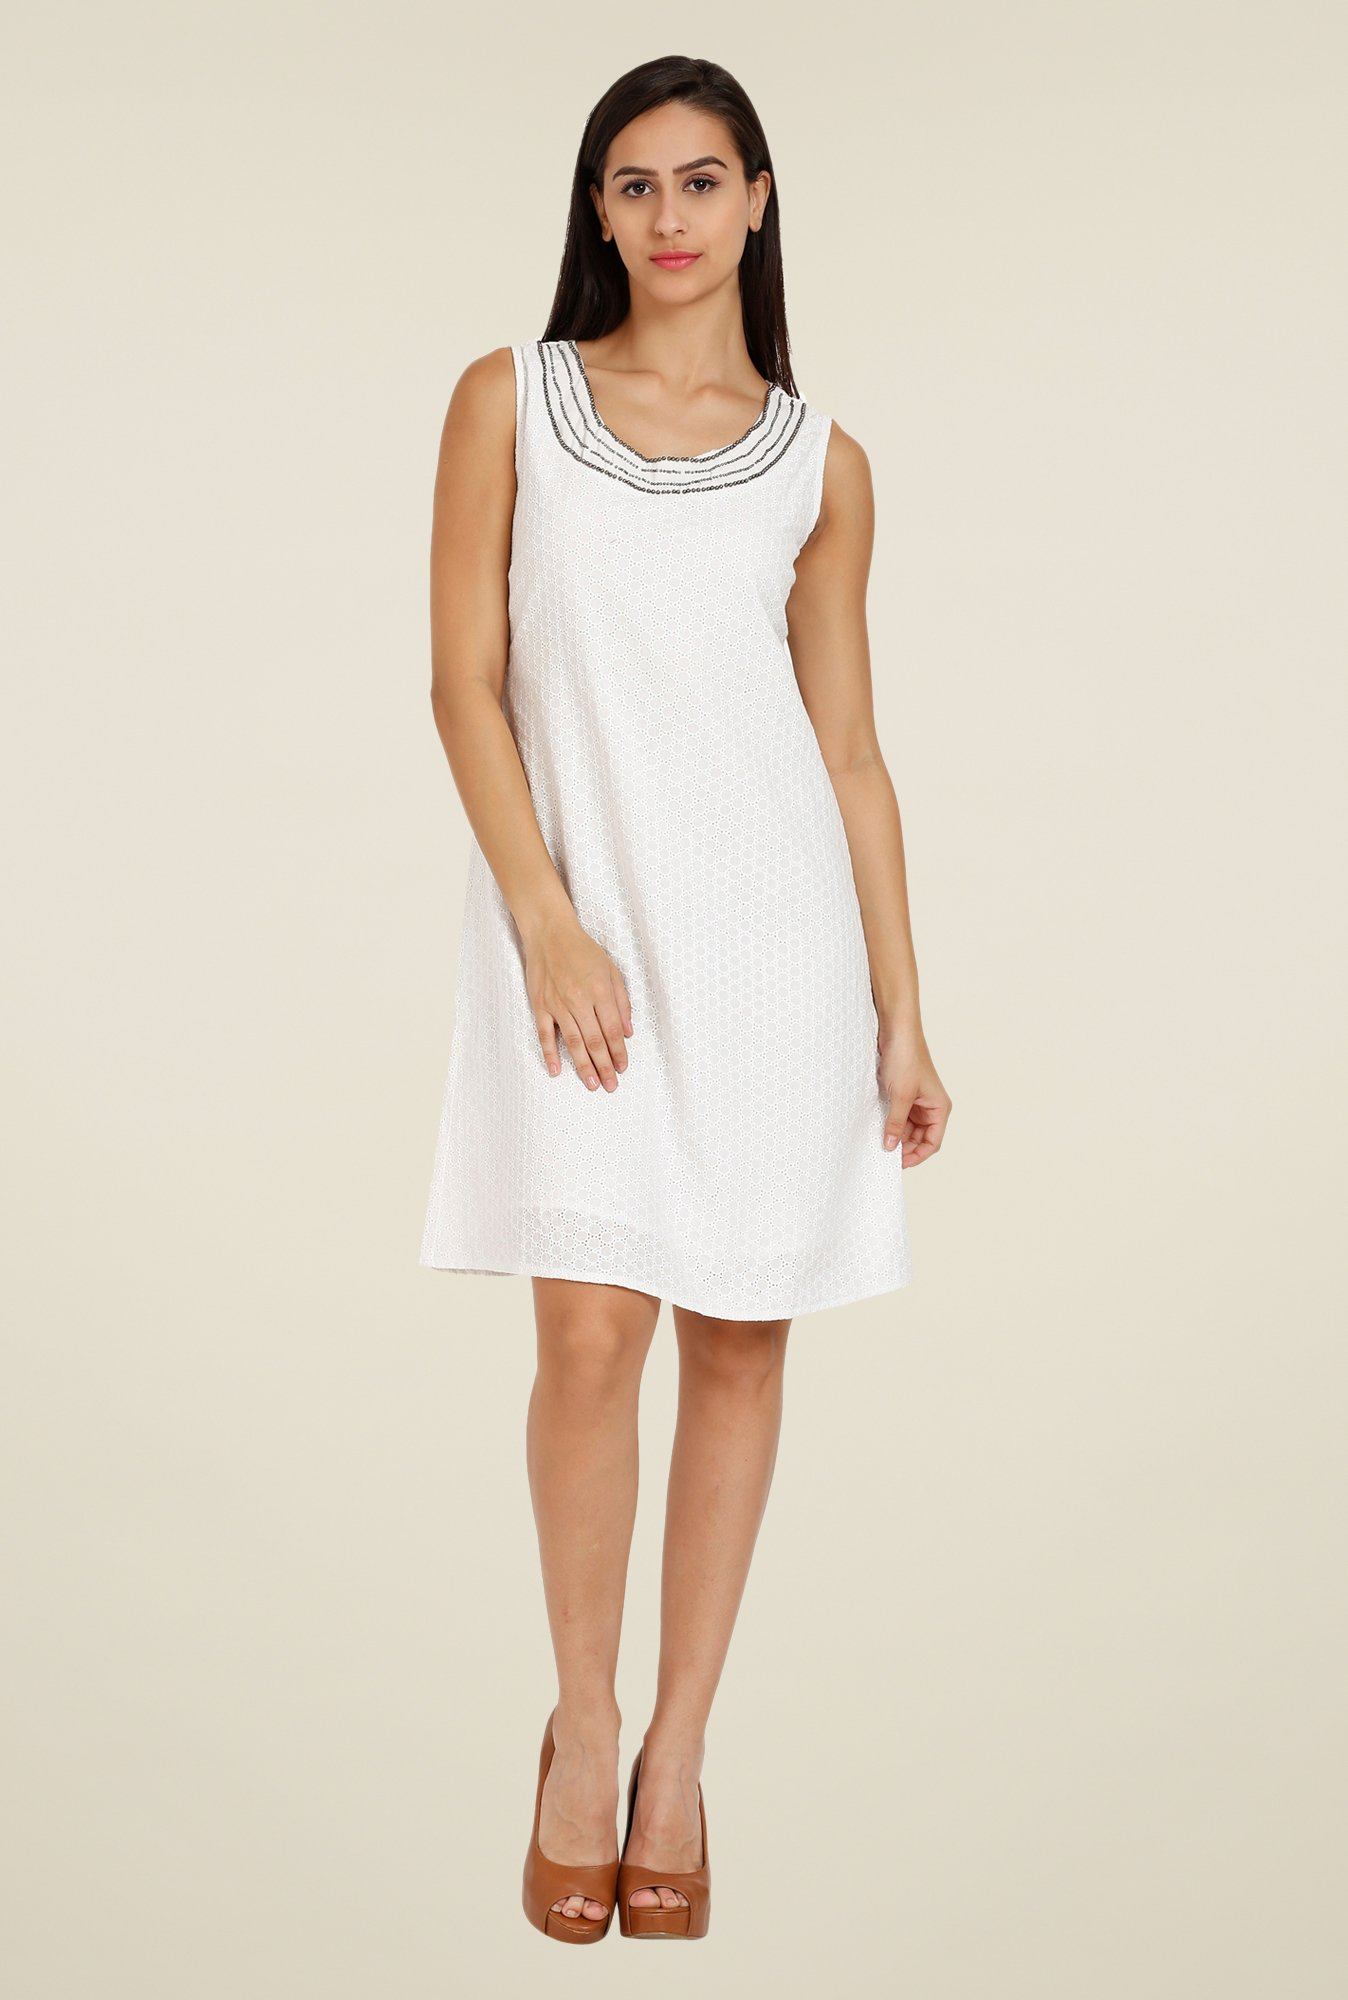 Forever Fashion White Self Print Dress